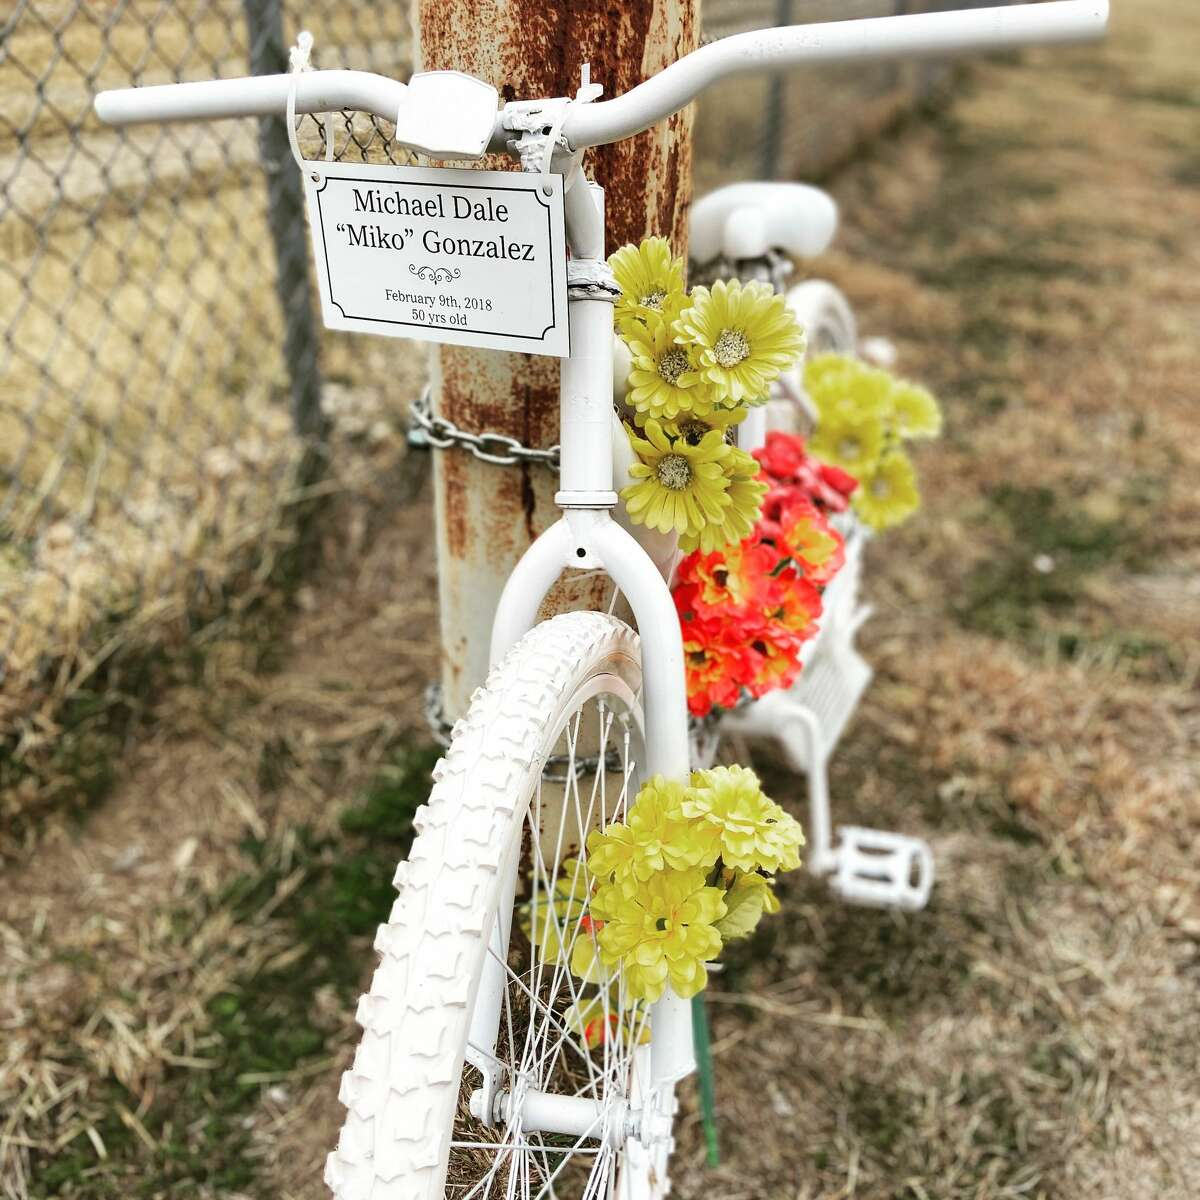 After experiencing many devastating losses in her life, Lynn Blanco Pérez, 41, started a ritual where she stops and pays her respects at any memorial site she finds on highways or roads, and sometimes even cemeteries.